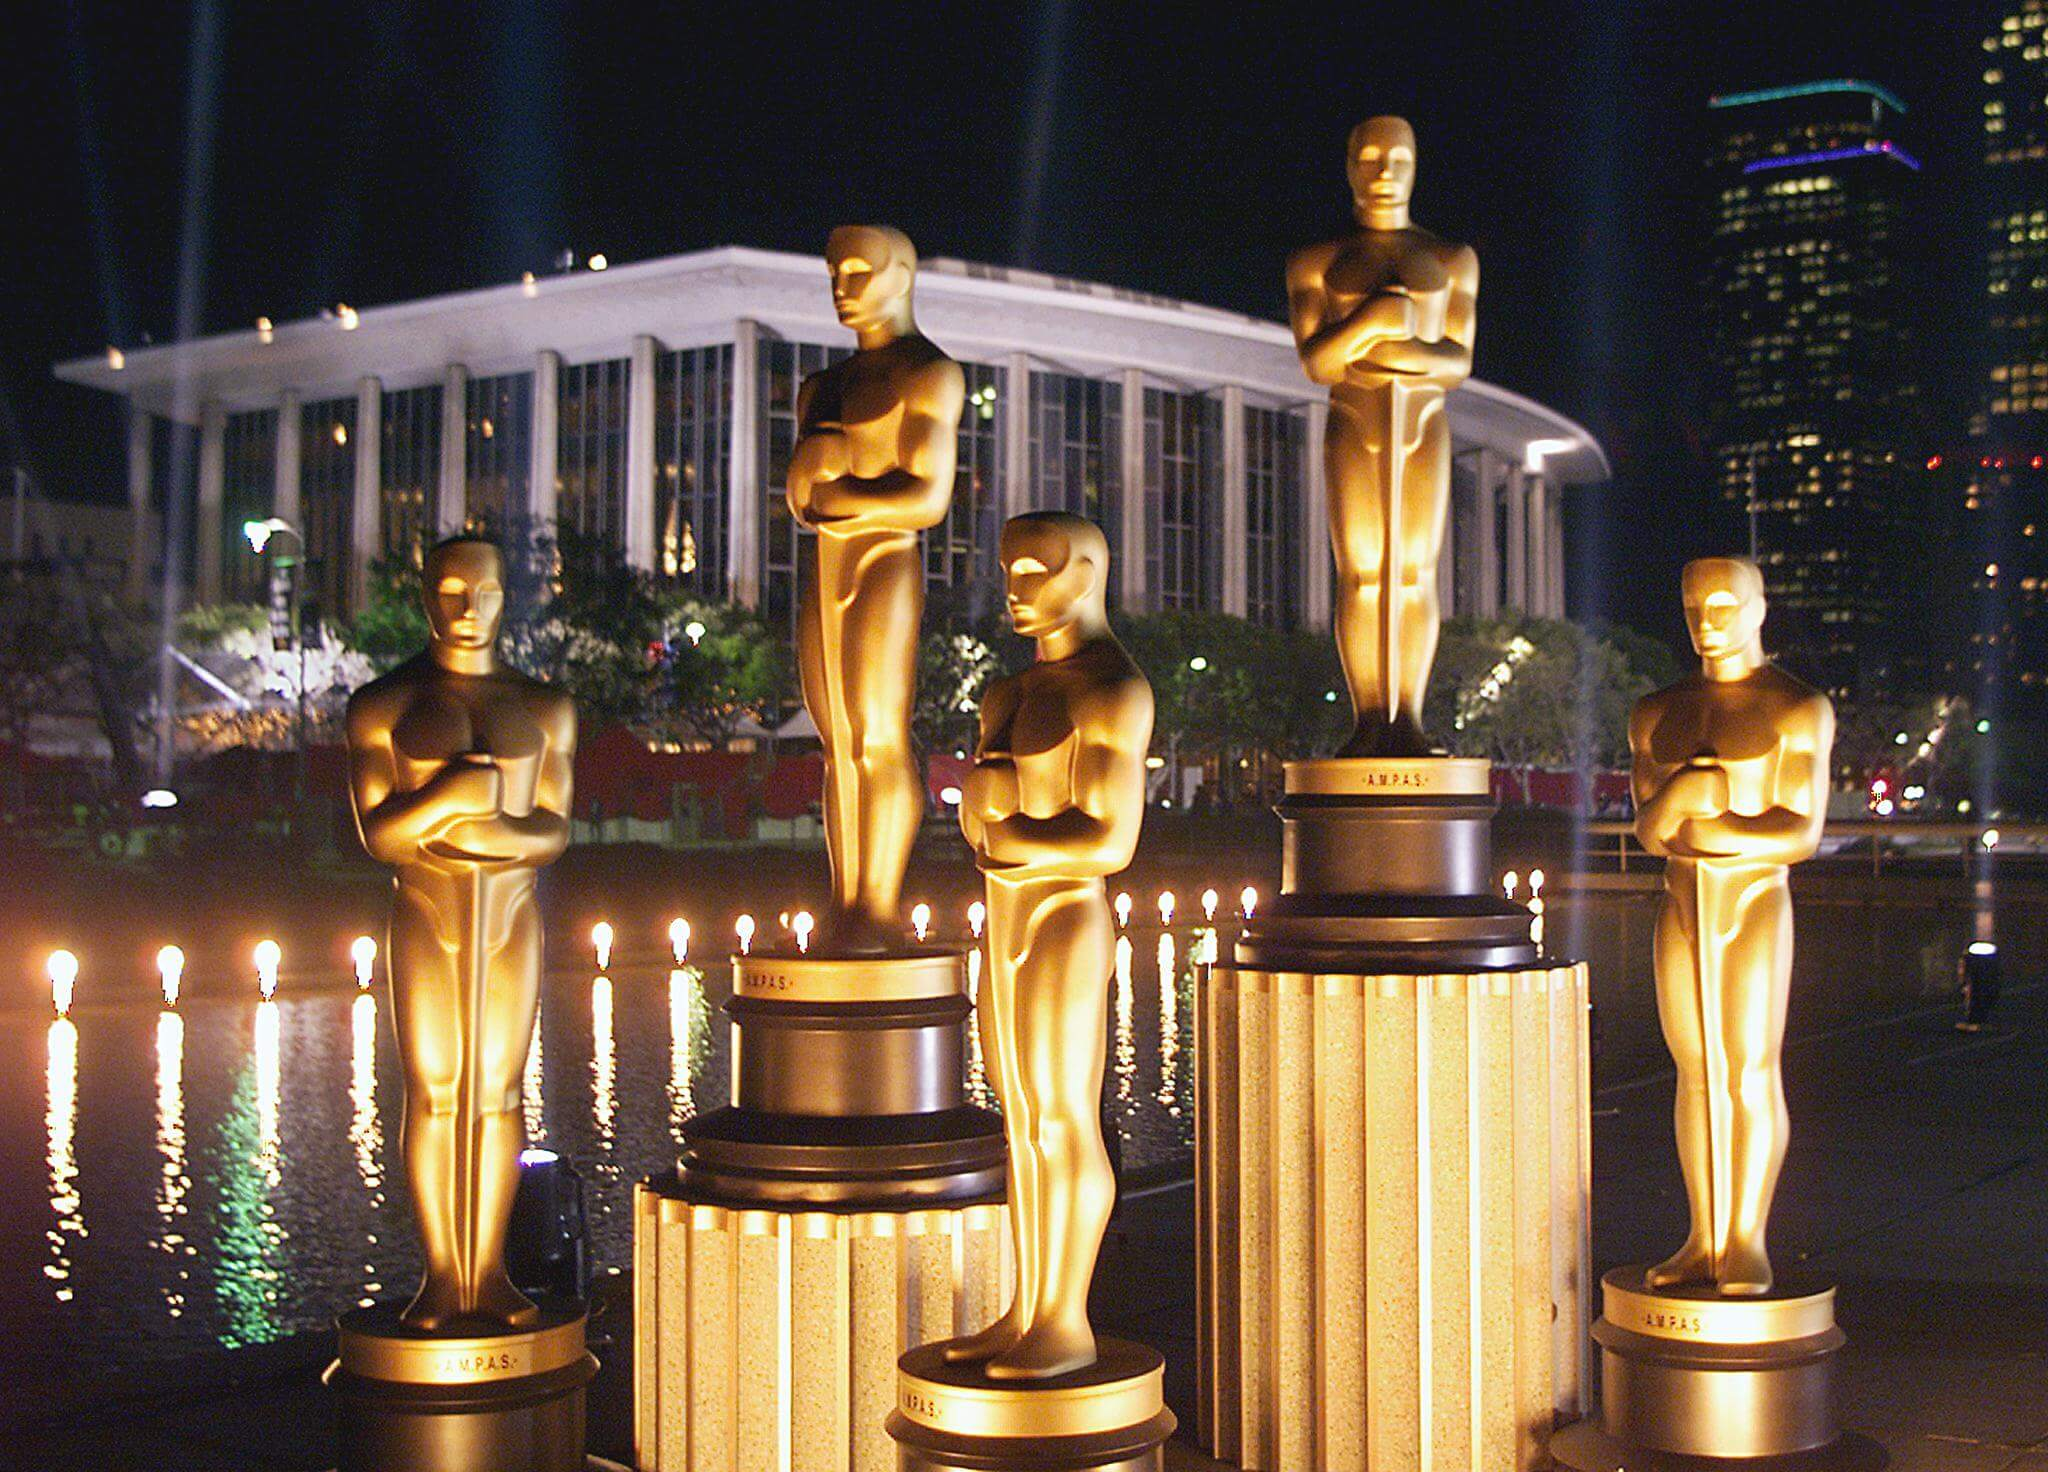 Replicas of Oscar statues are lit in the night out